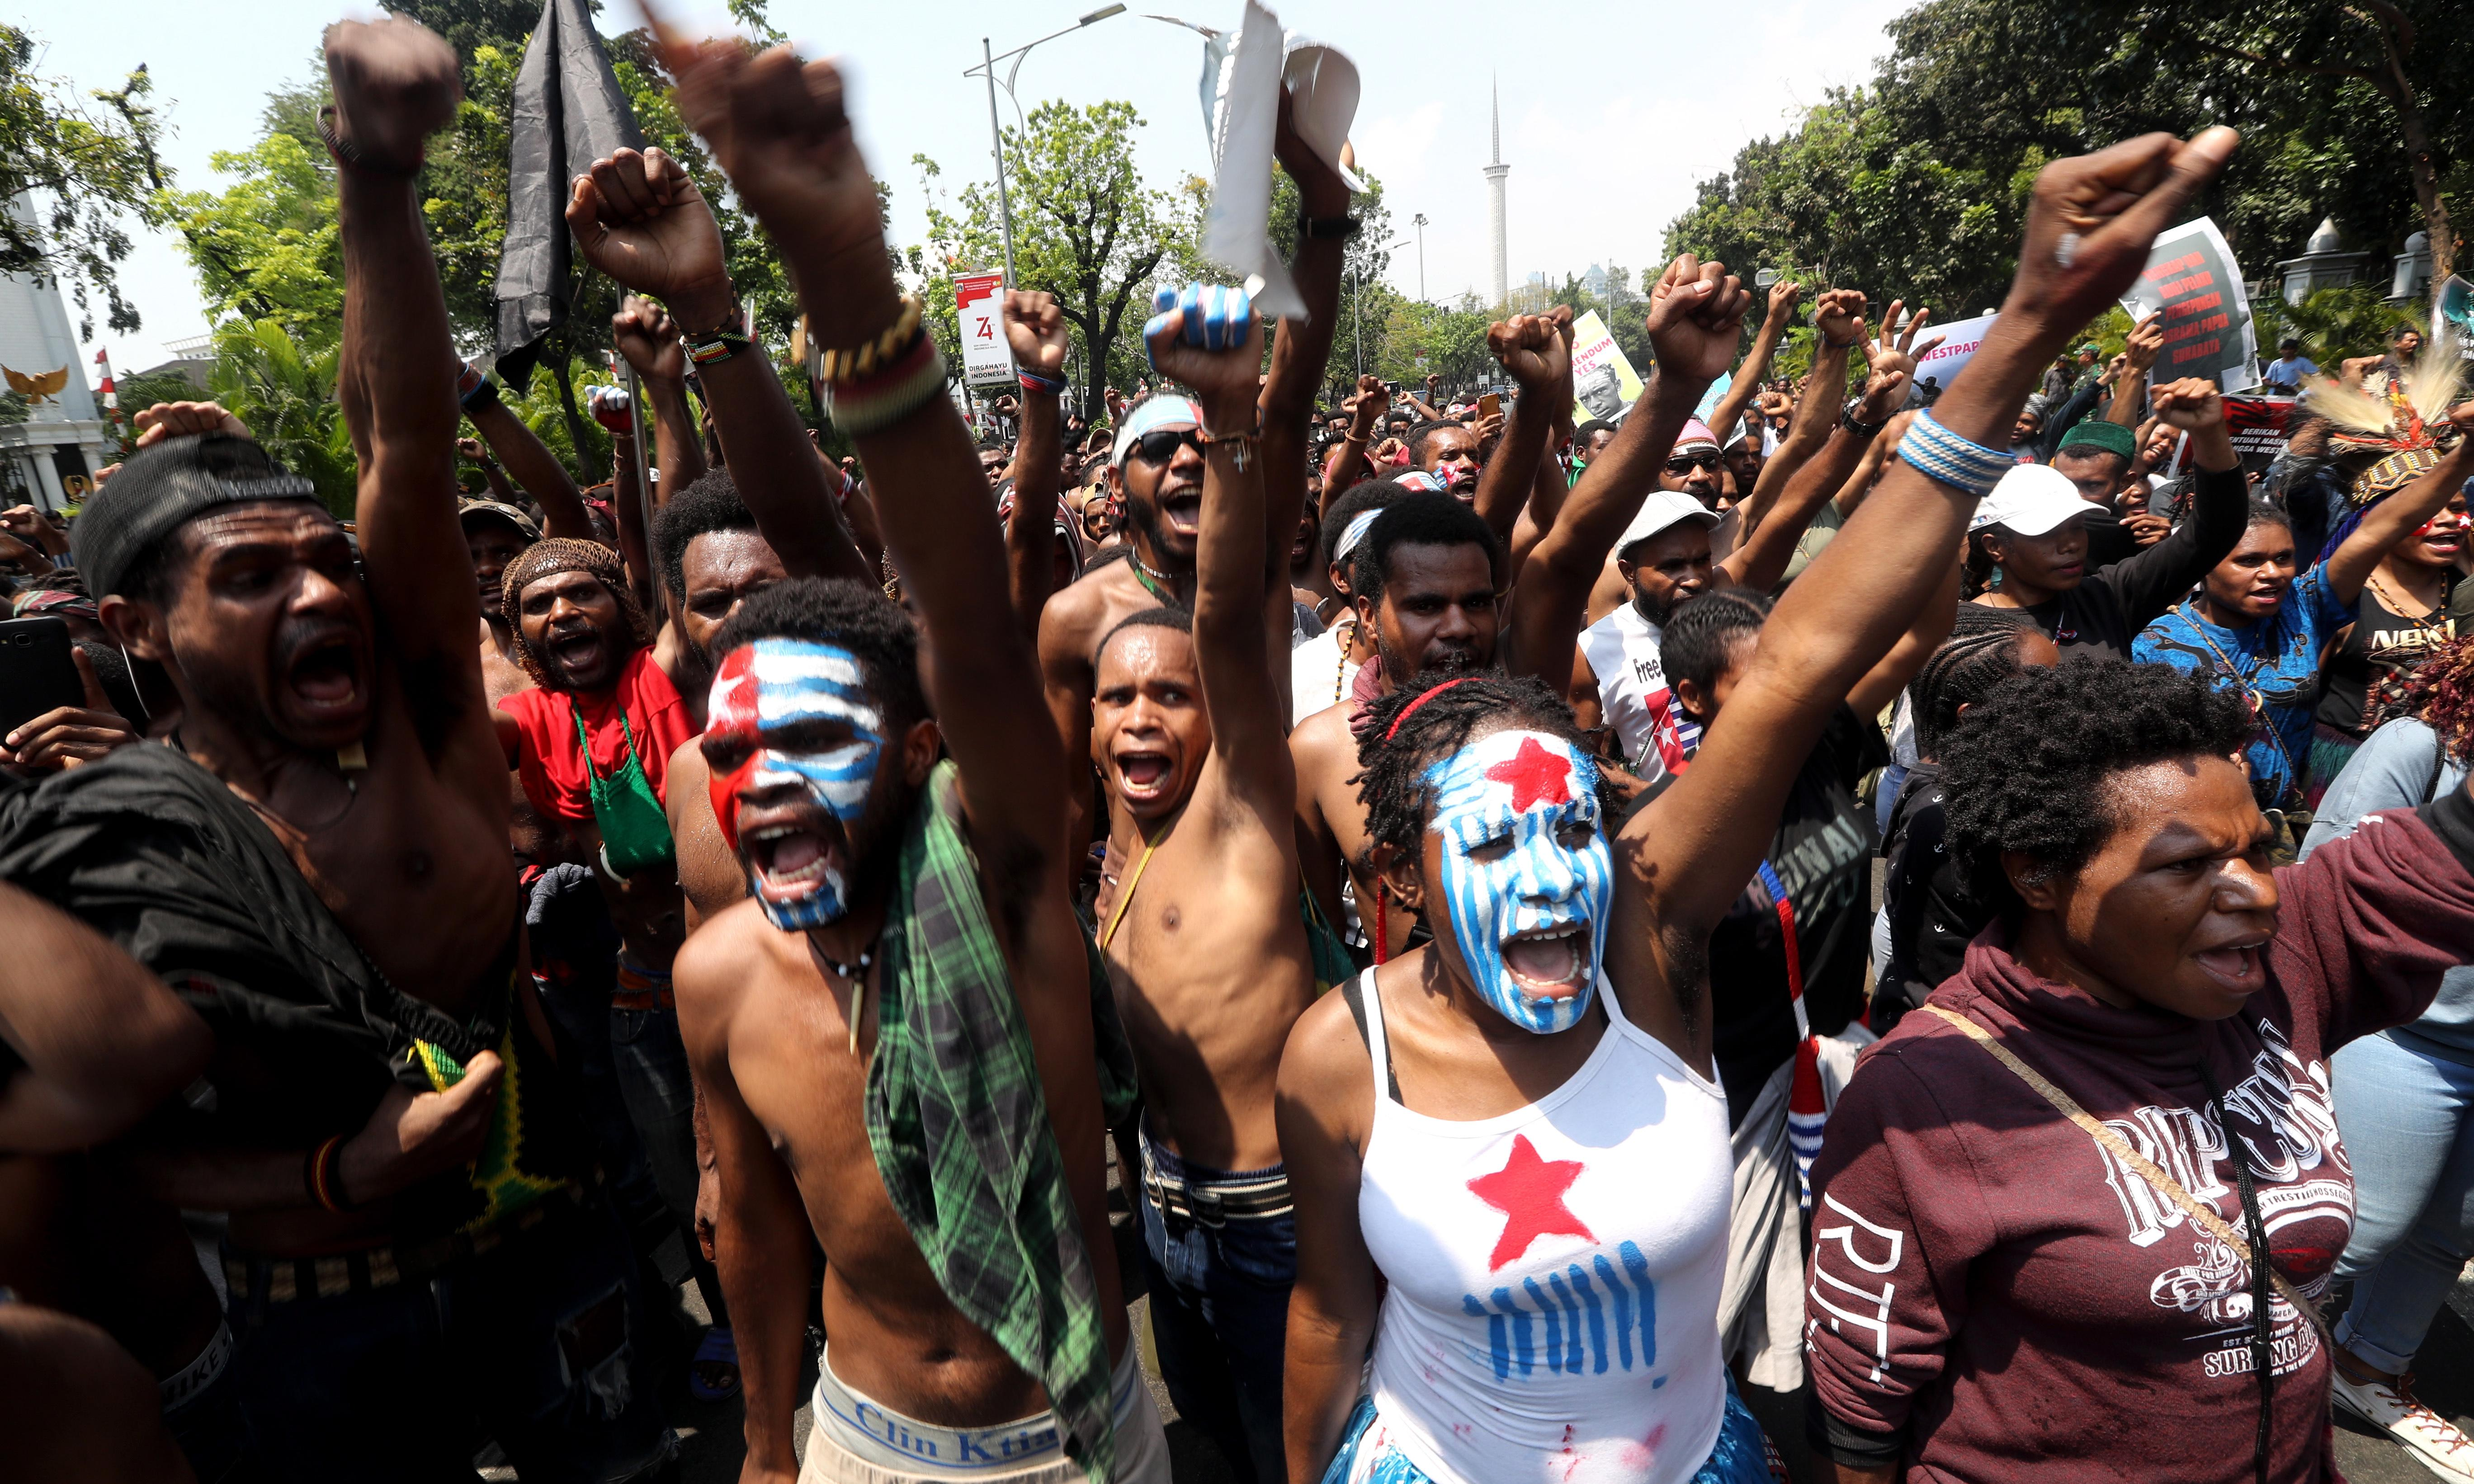 West Papua: thousands expected at fresh protests after week of violence